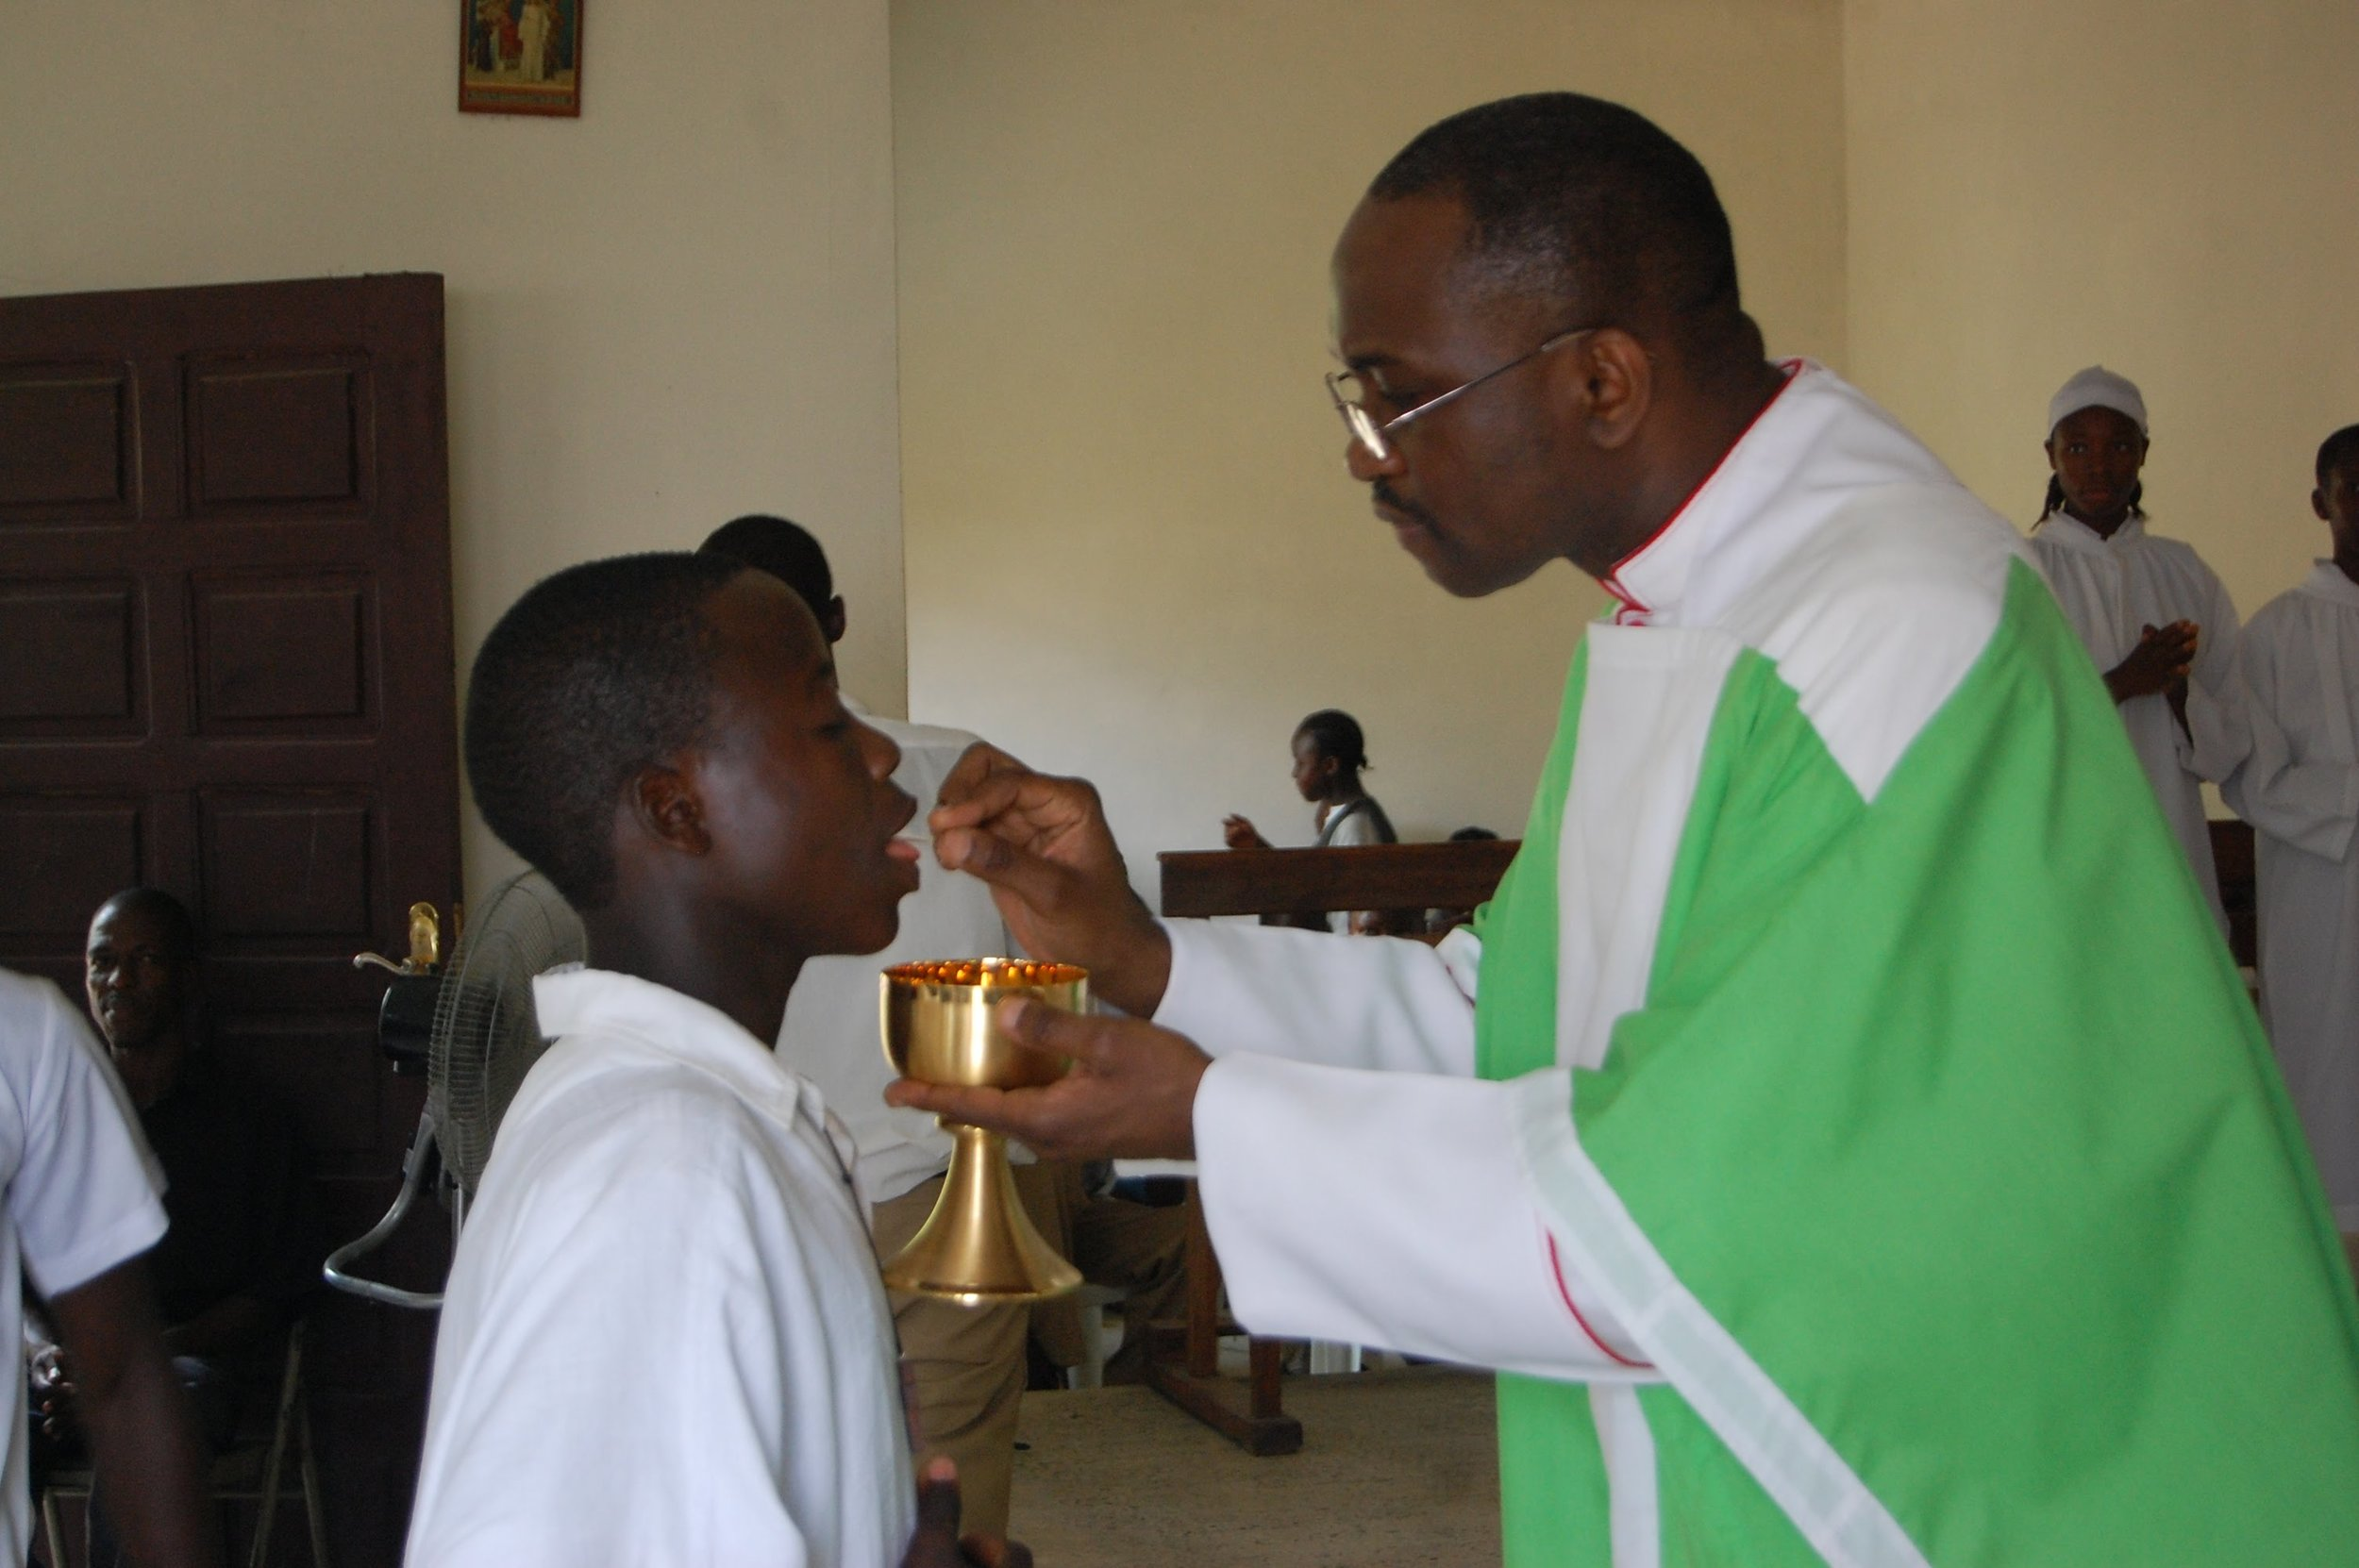 Students celebrating mass in our chapel in 2010.